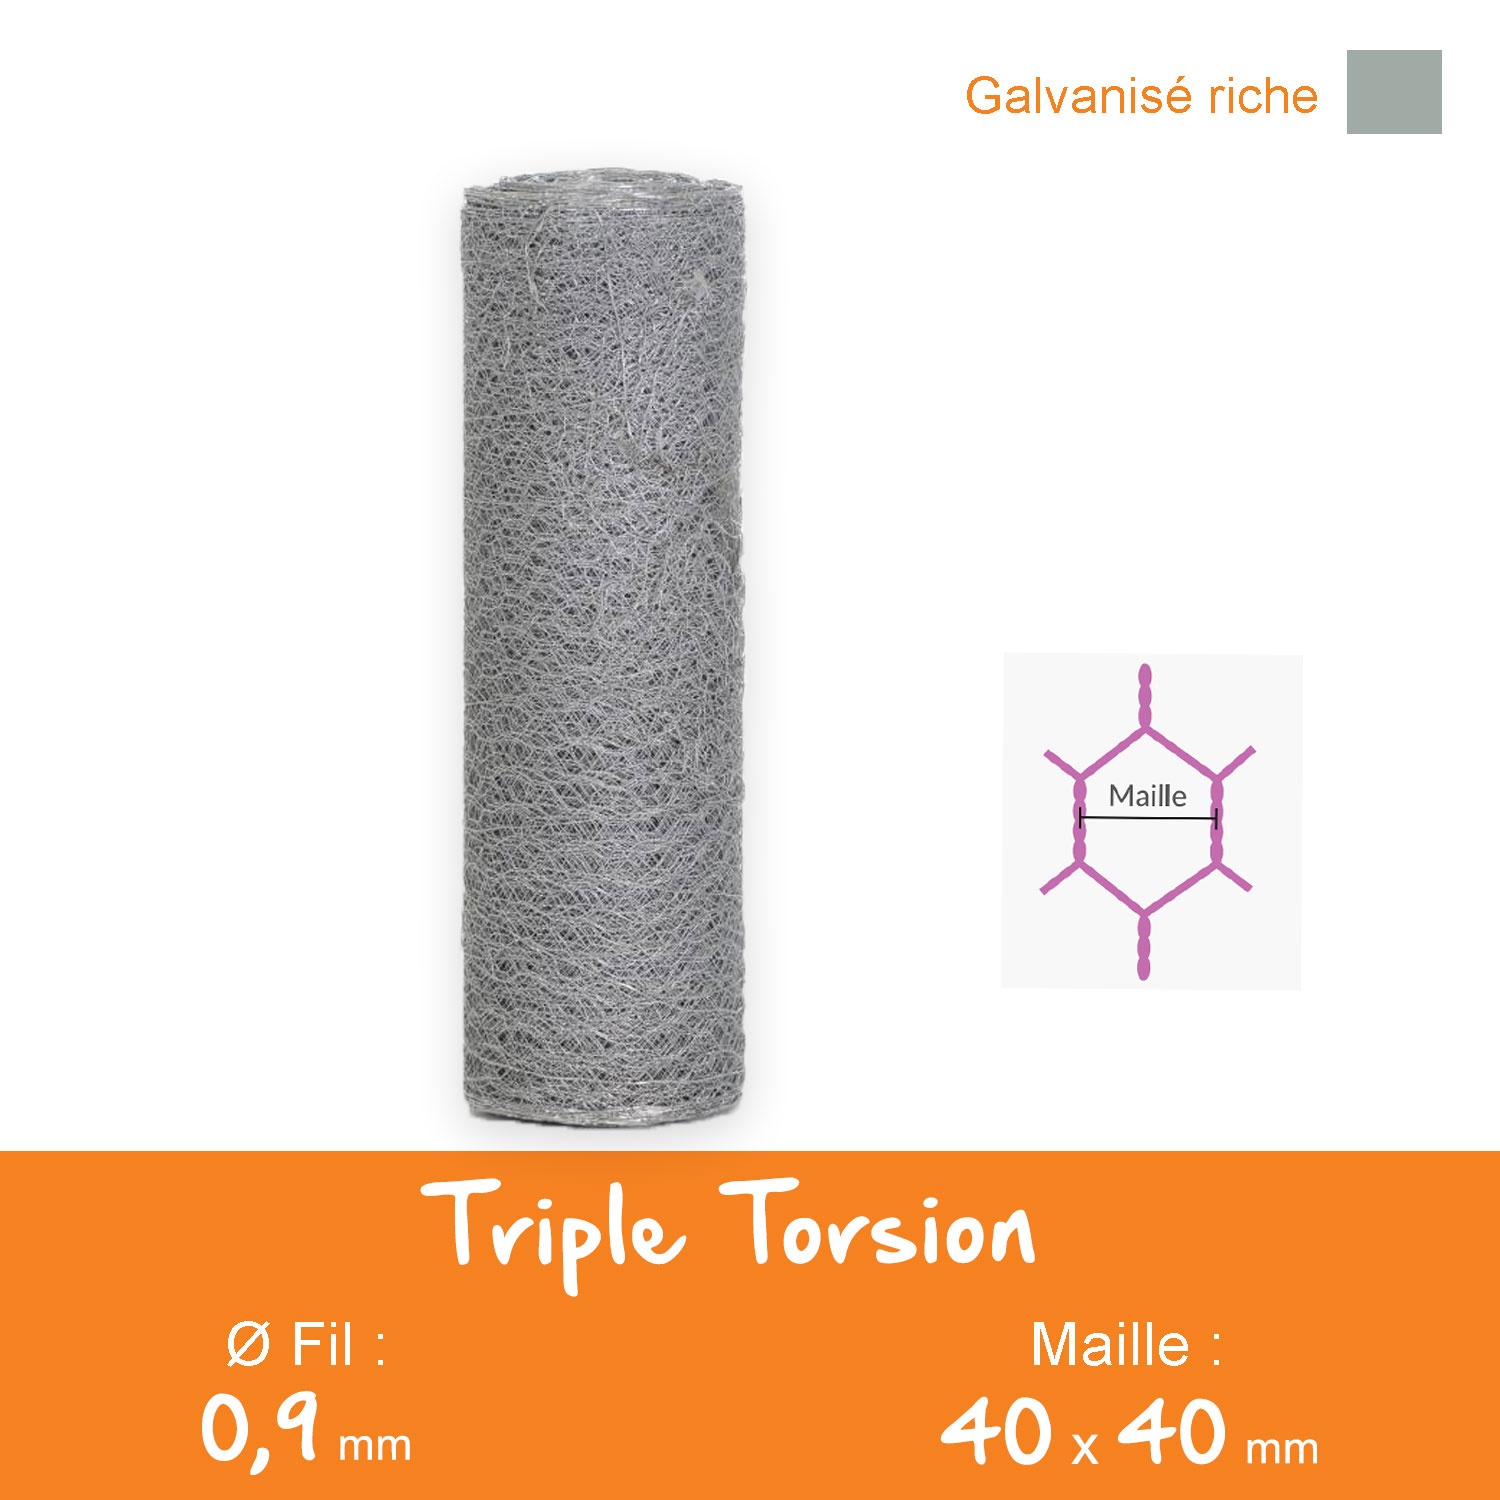 Triple Torsion Galvanisé - Maille 40 mm Ø 0,9 mm - Lg.50ml